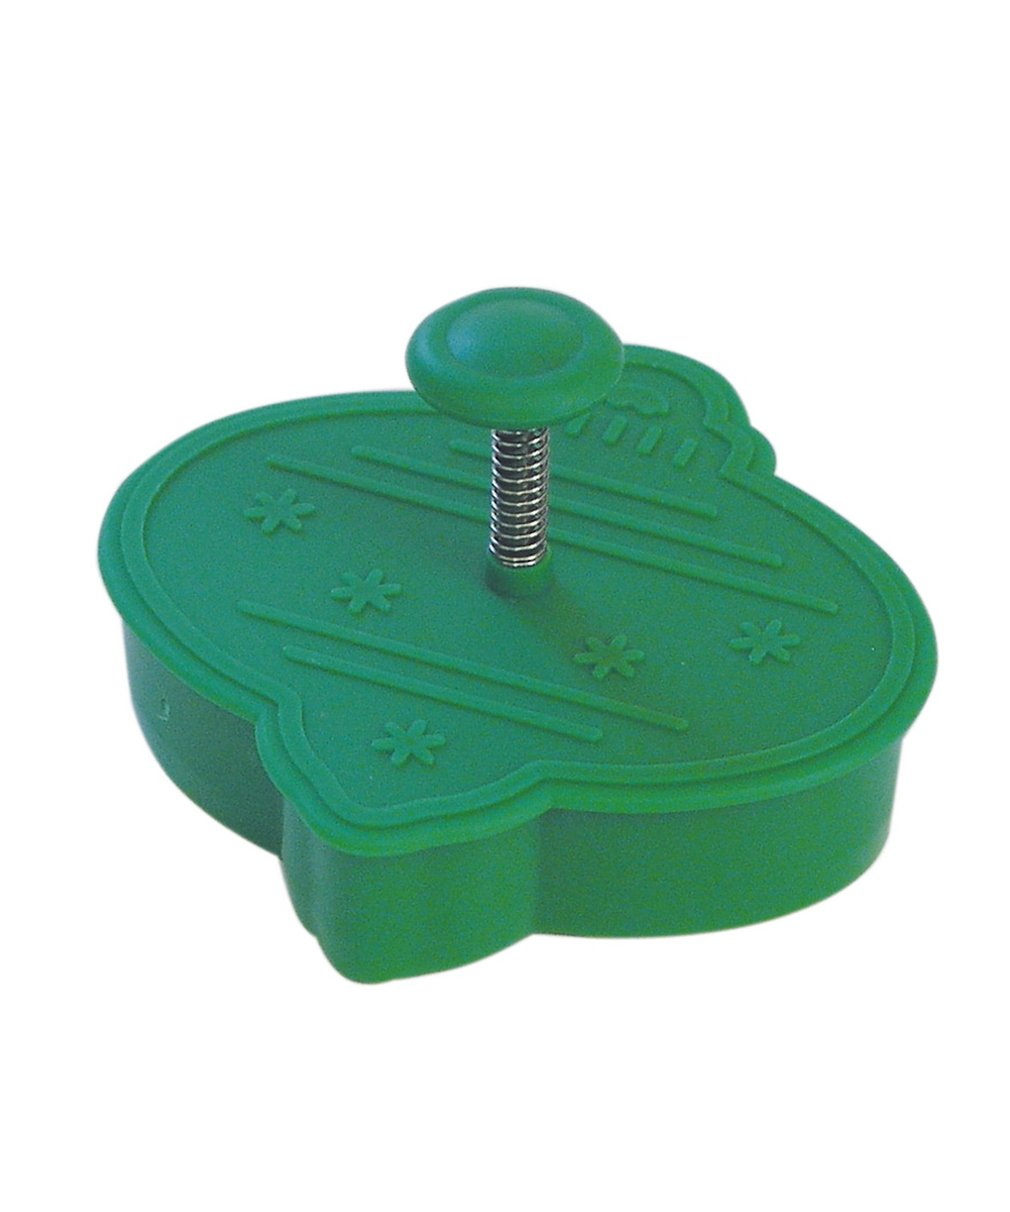 CybrTrayd RM-0404 R&M Ornament Cookie Stamper 2.75' One size Green